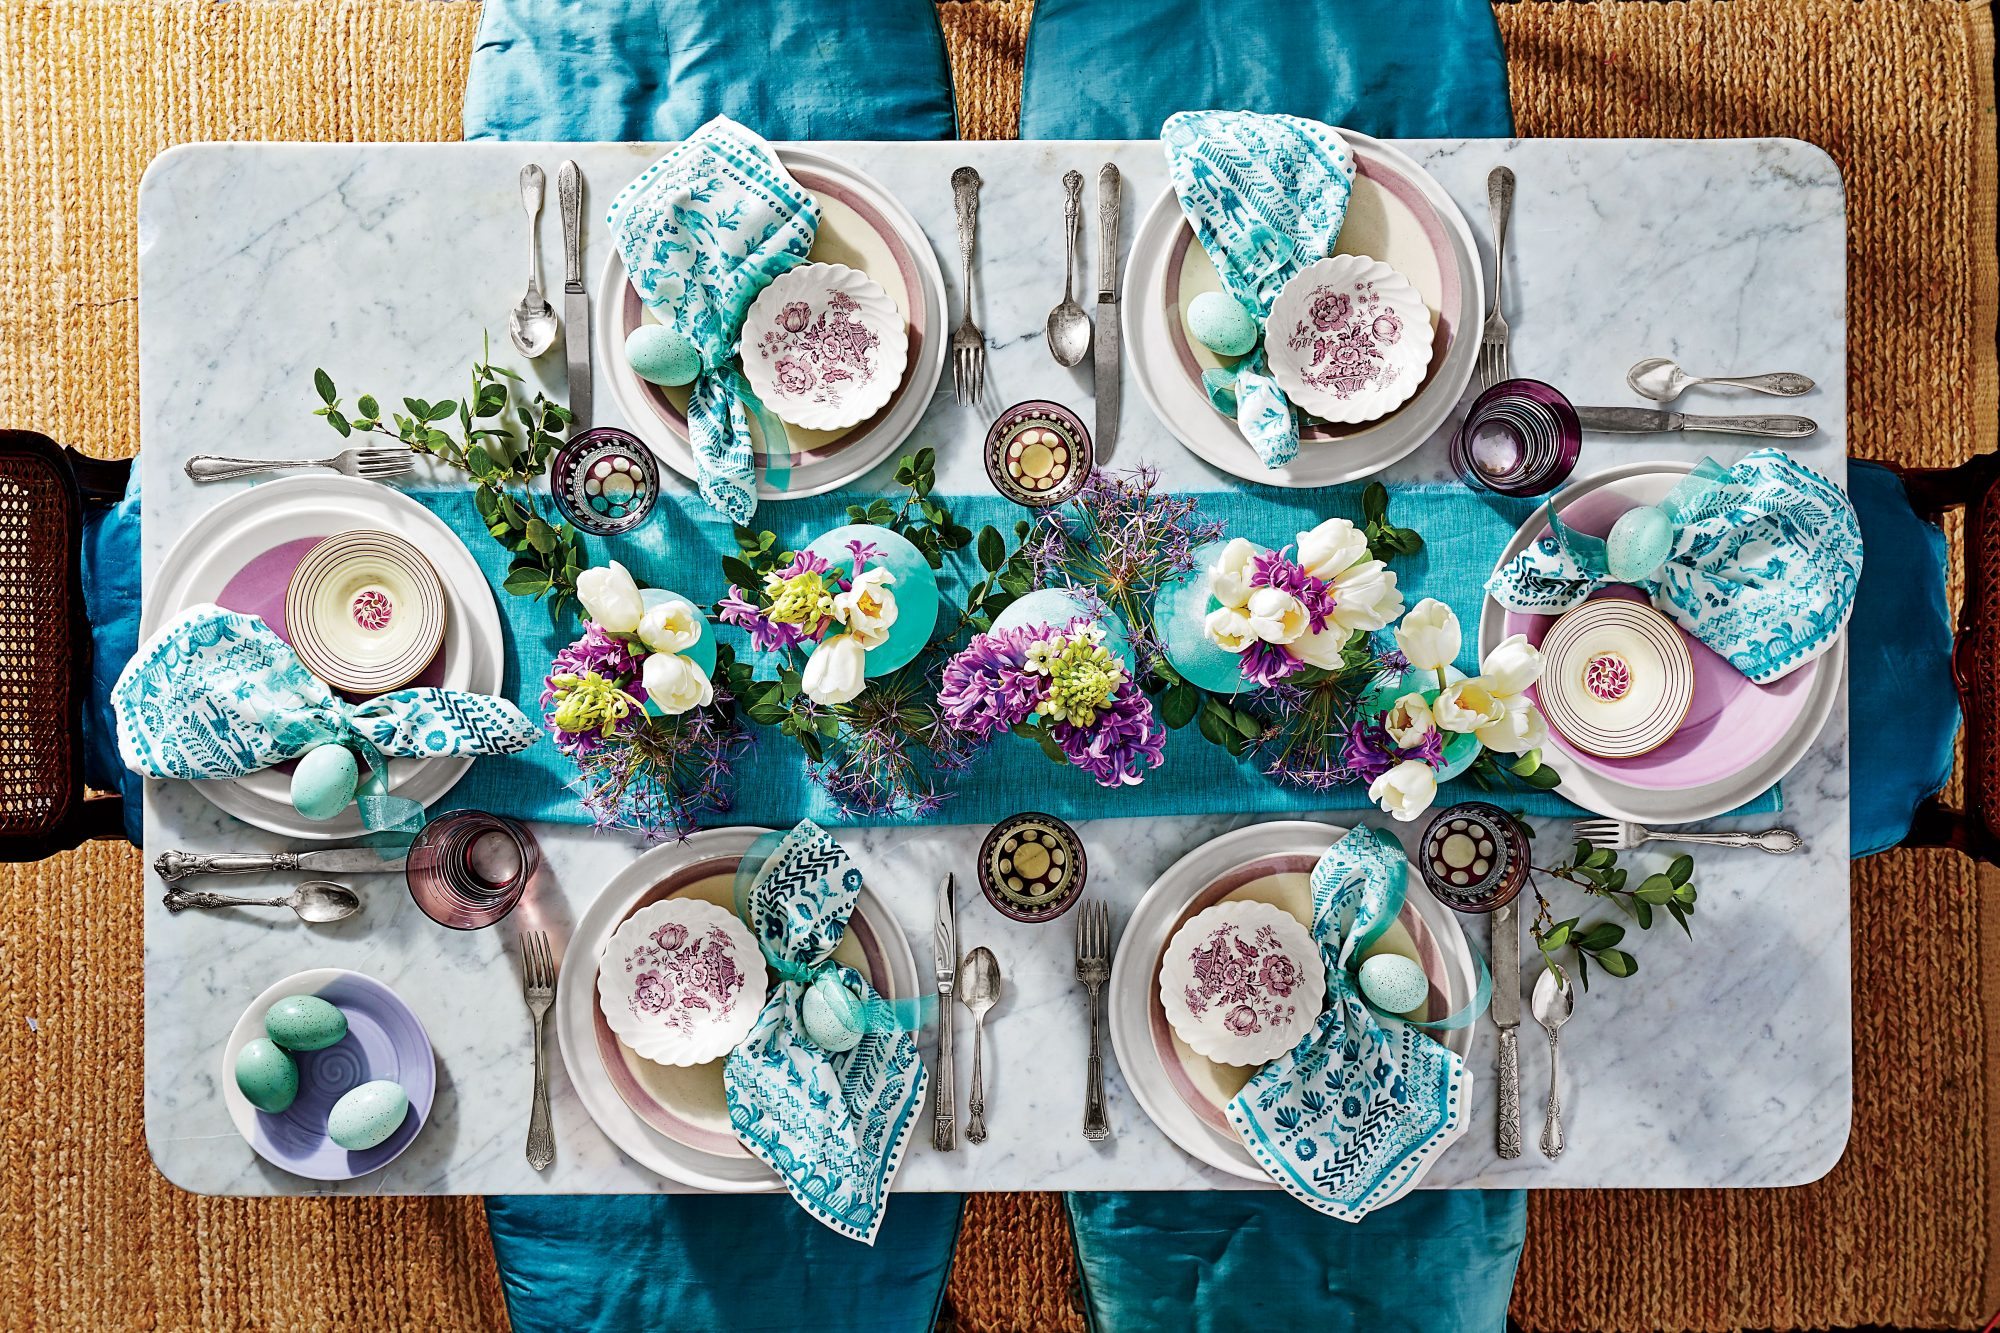 A Whimsical Purple and Teal Table